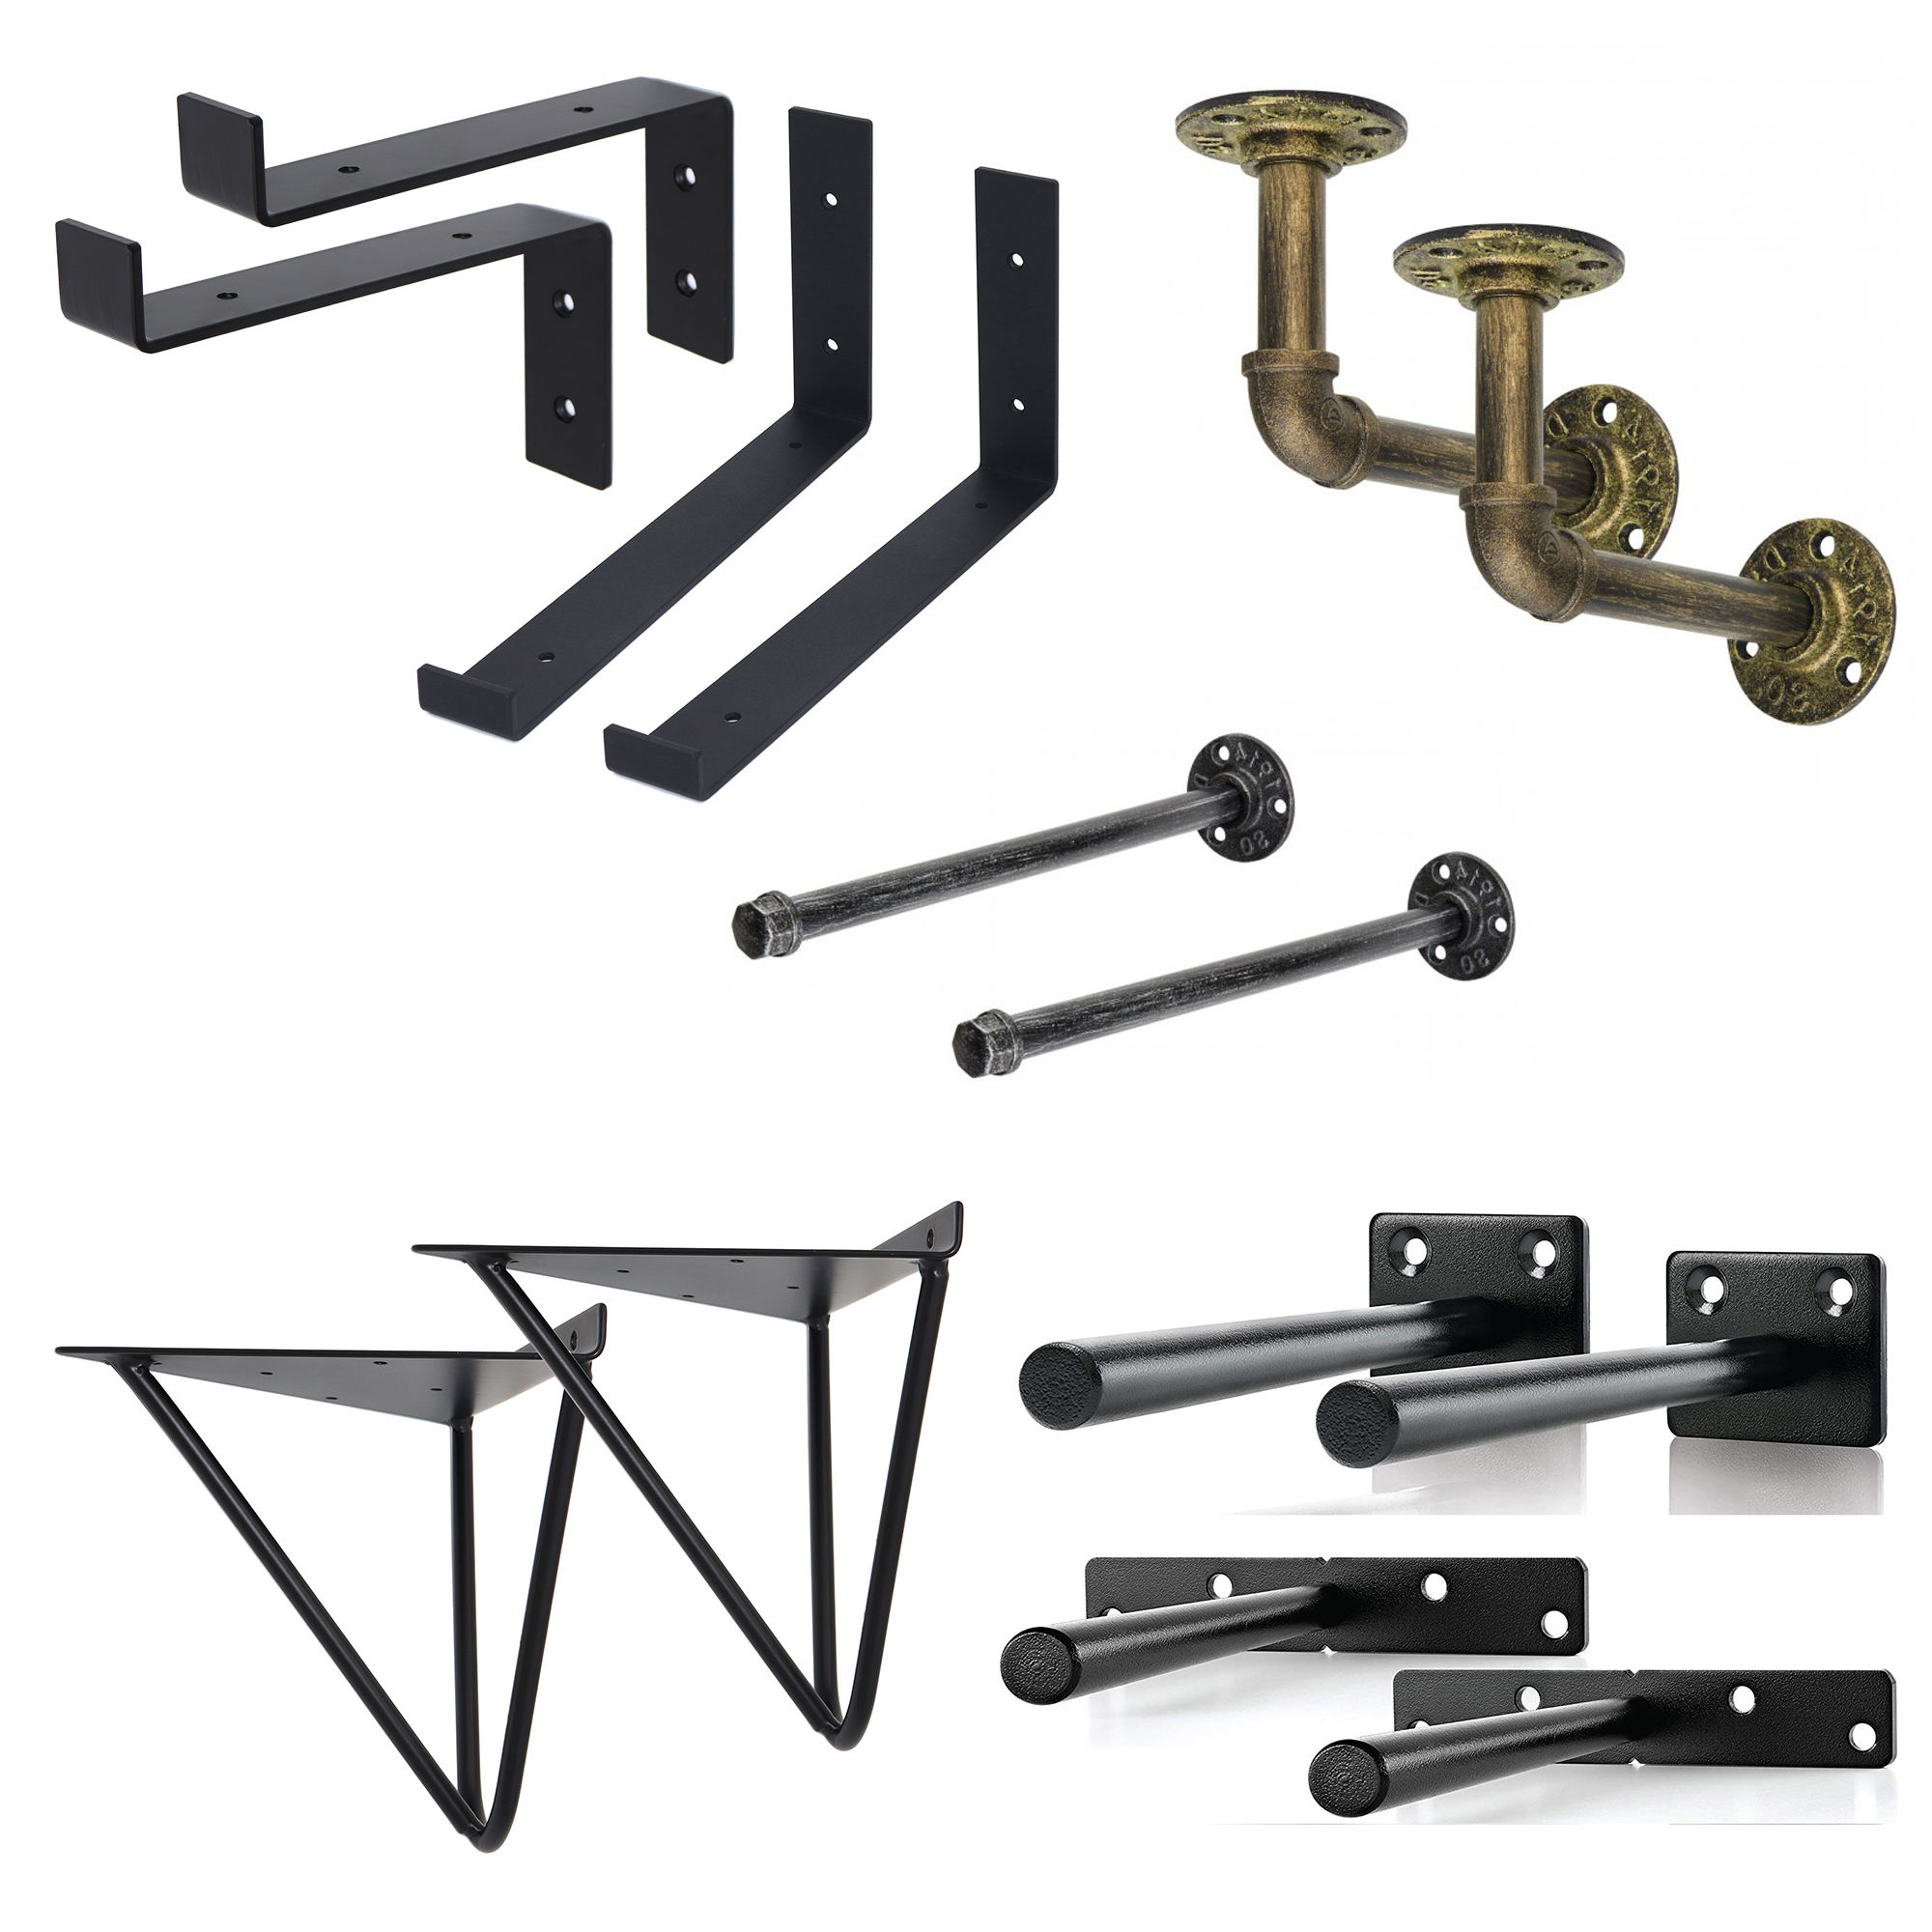 Shelves Bracket Rustic Black Solid Steel Strong Heavy Duty Diy L Set Cast Iron Metal Wall Floating Shelf Brackets For Shelves